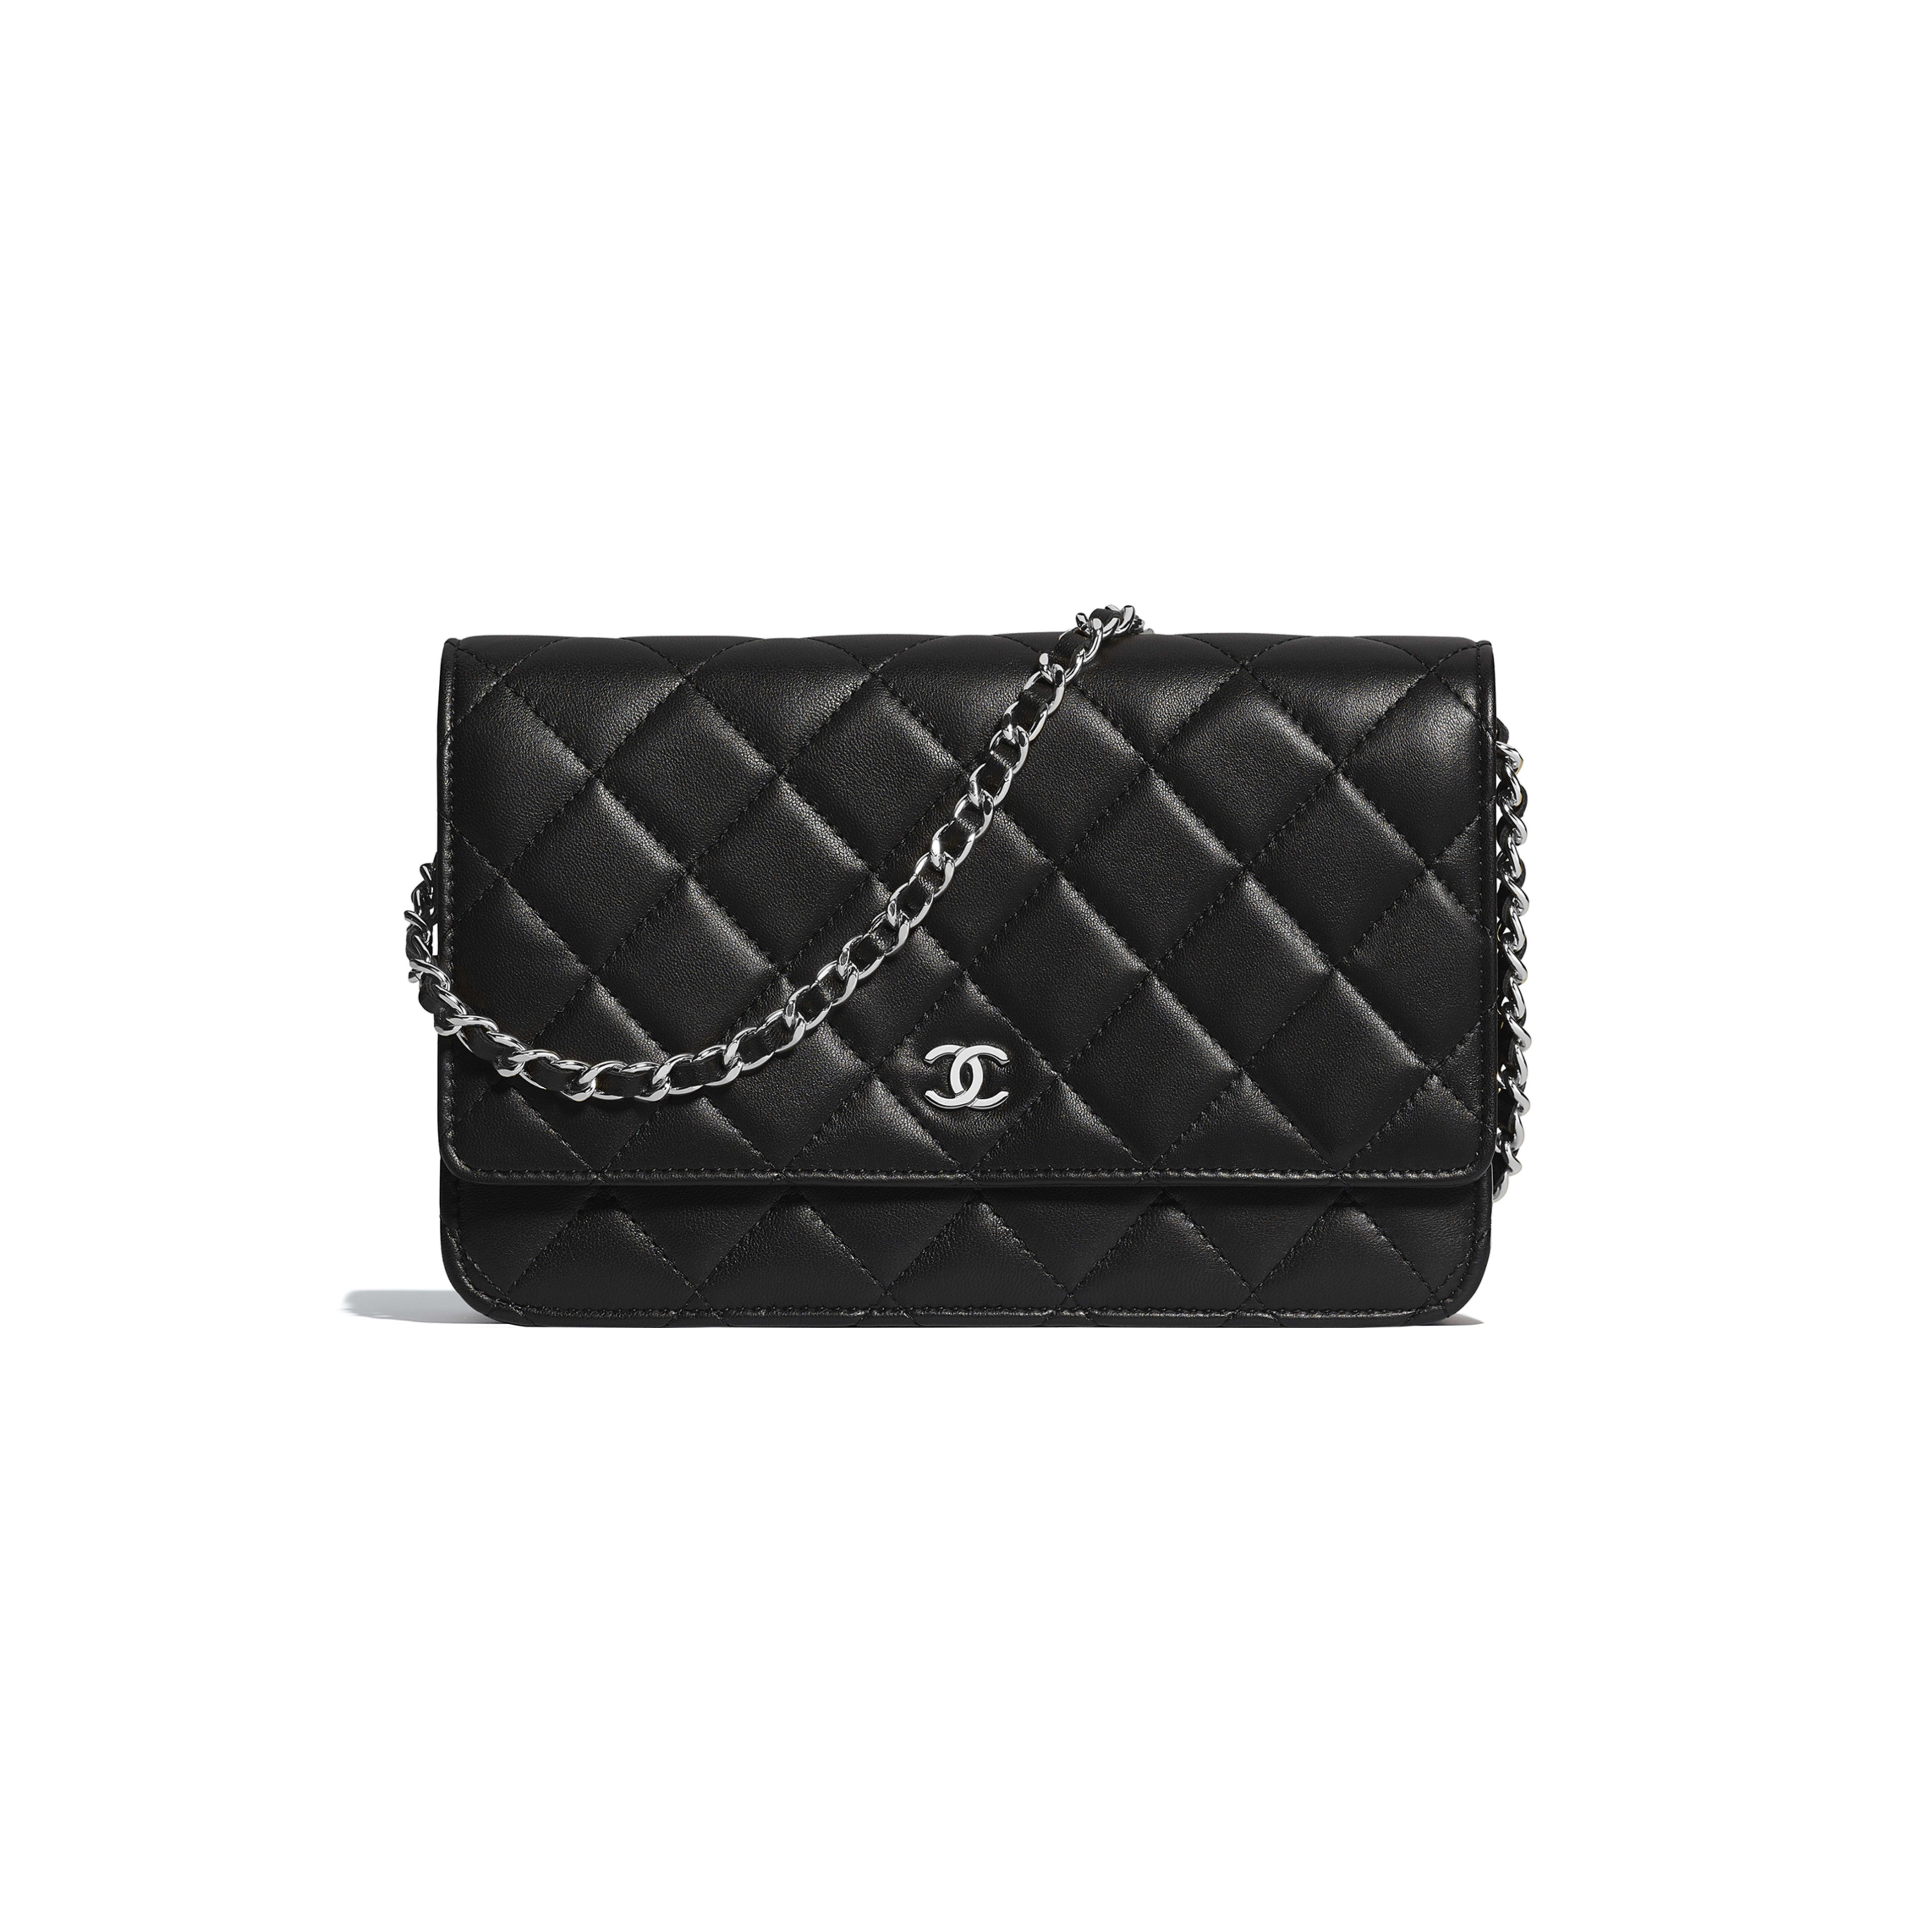 Classic Wallet on Chain - Black - Lambskin & Silver-Tone Metal - Default view - see full sized version